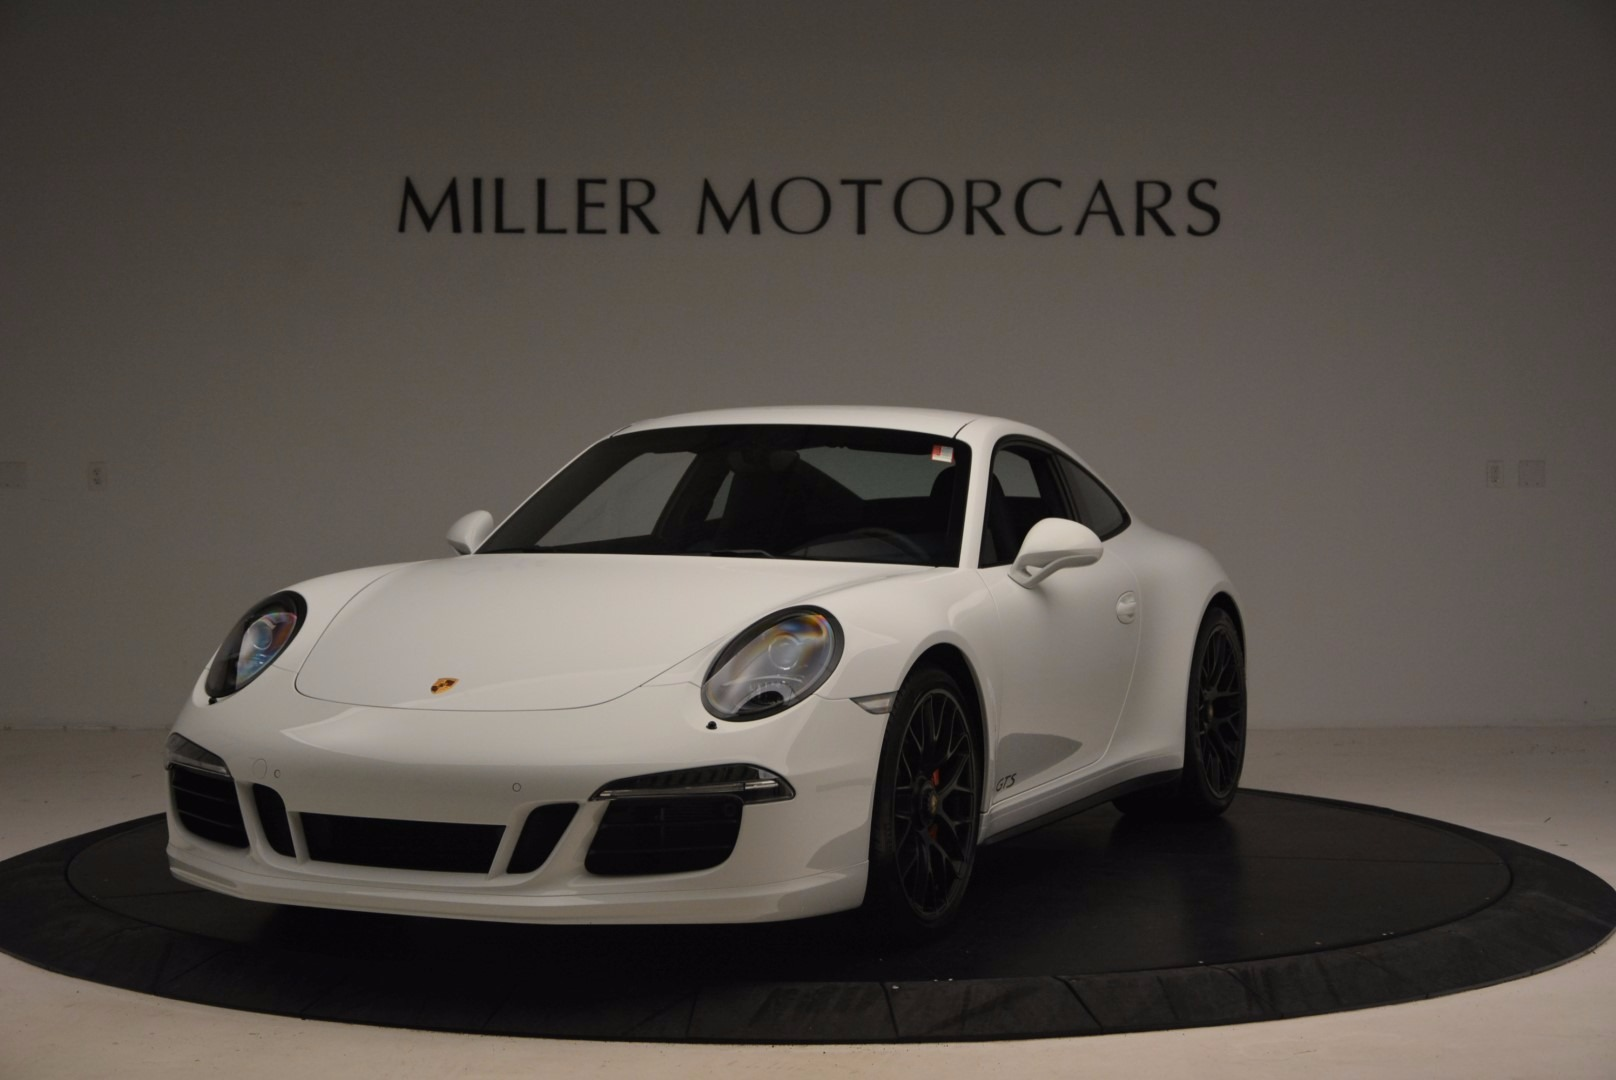 Used 2015 Porsche 911 Carrera GTS for sale Sold at Alfa Romeo of Westport in Westport CT 06880 1